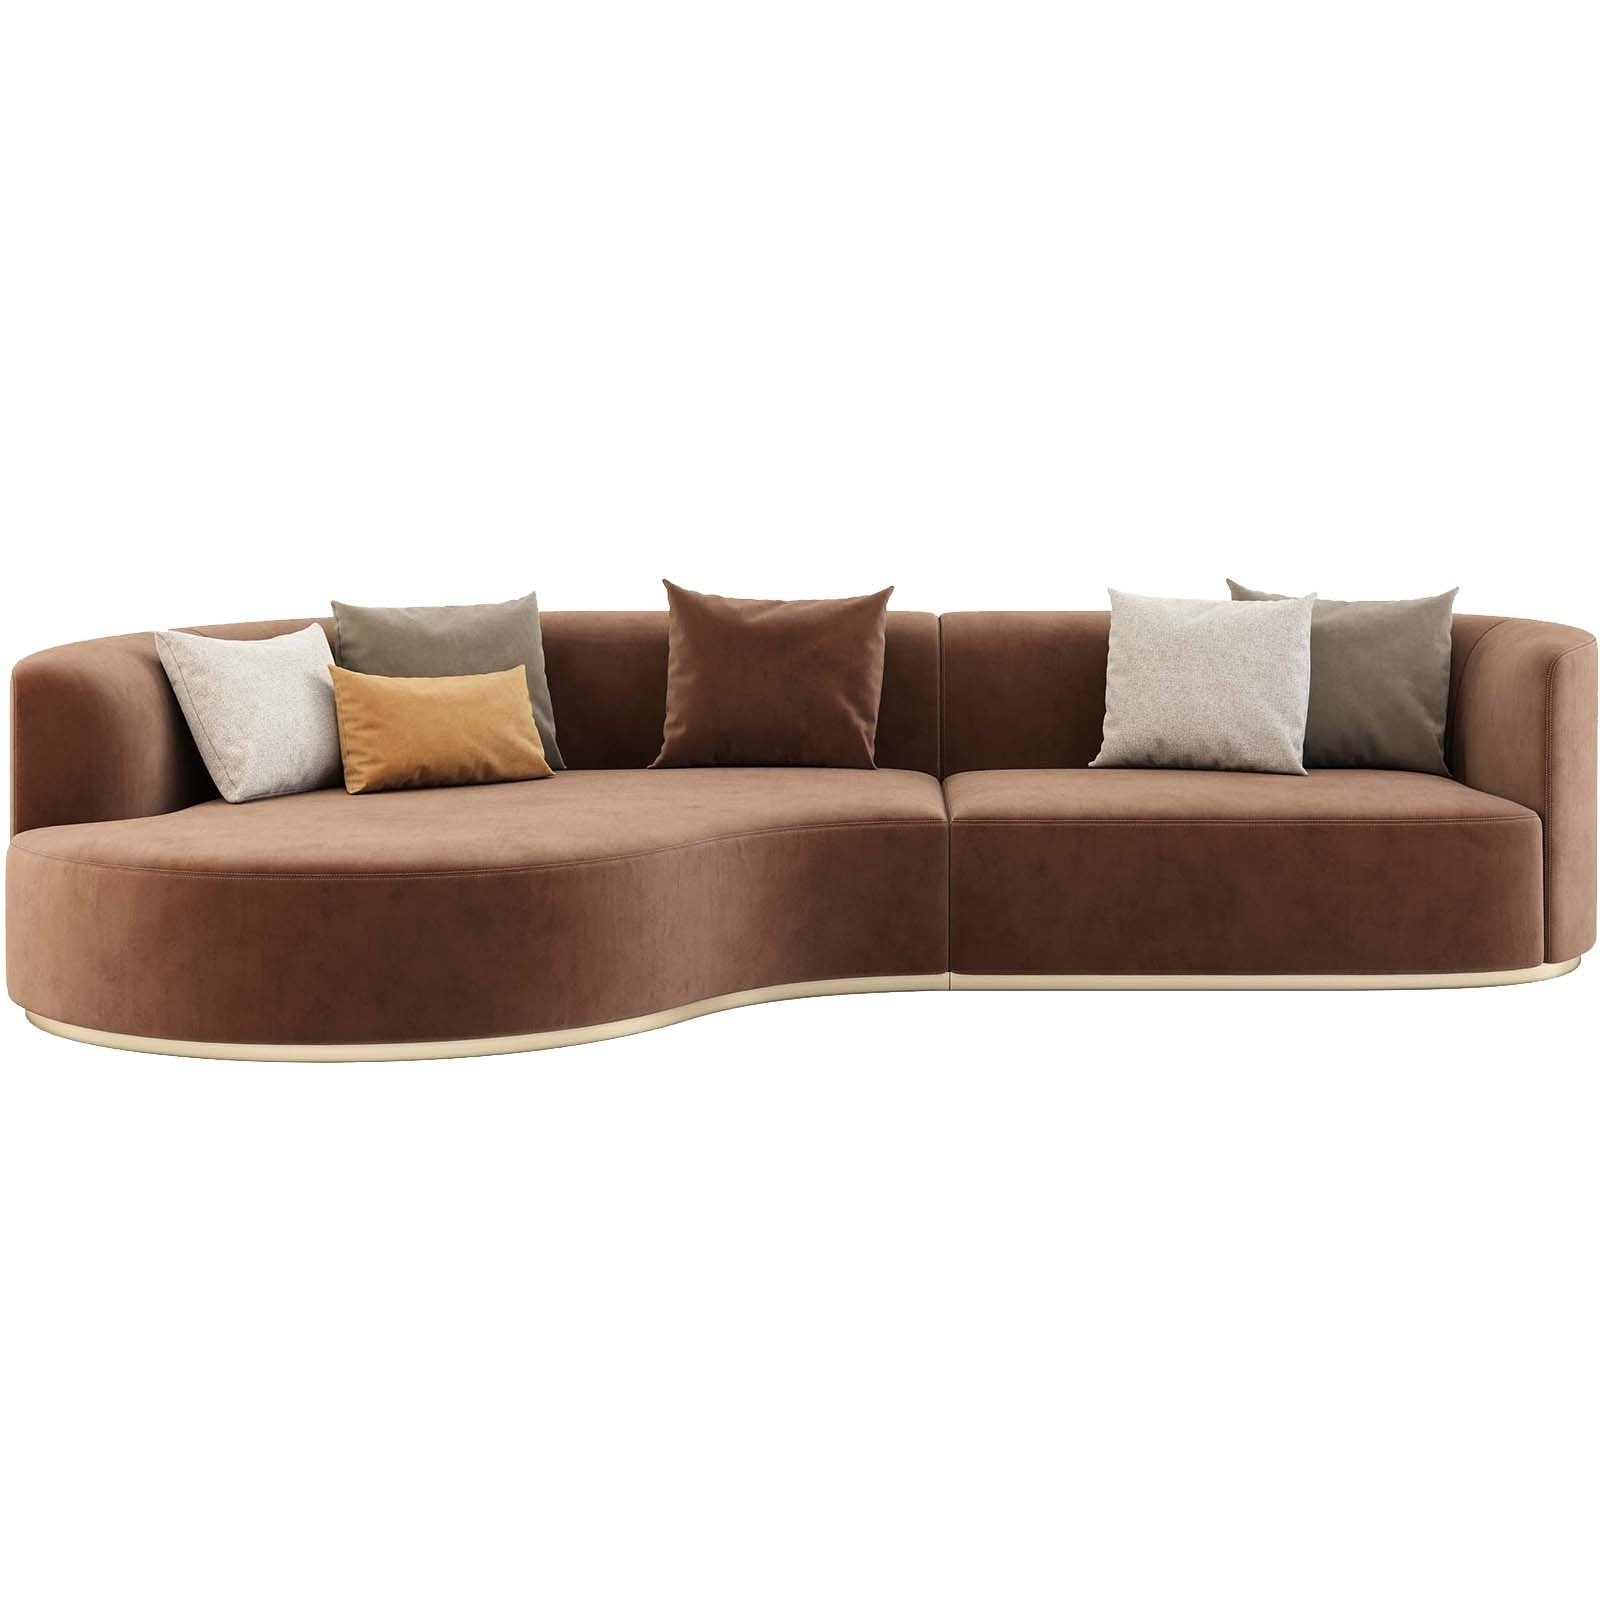 Chloe Curved Sofa